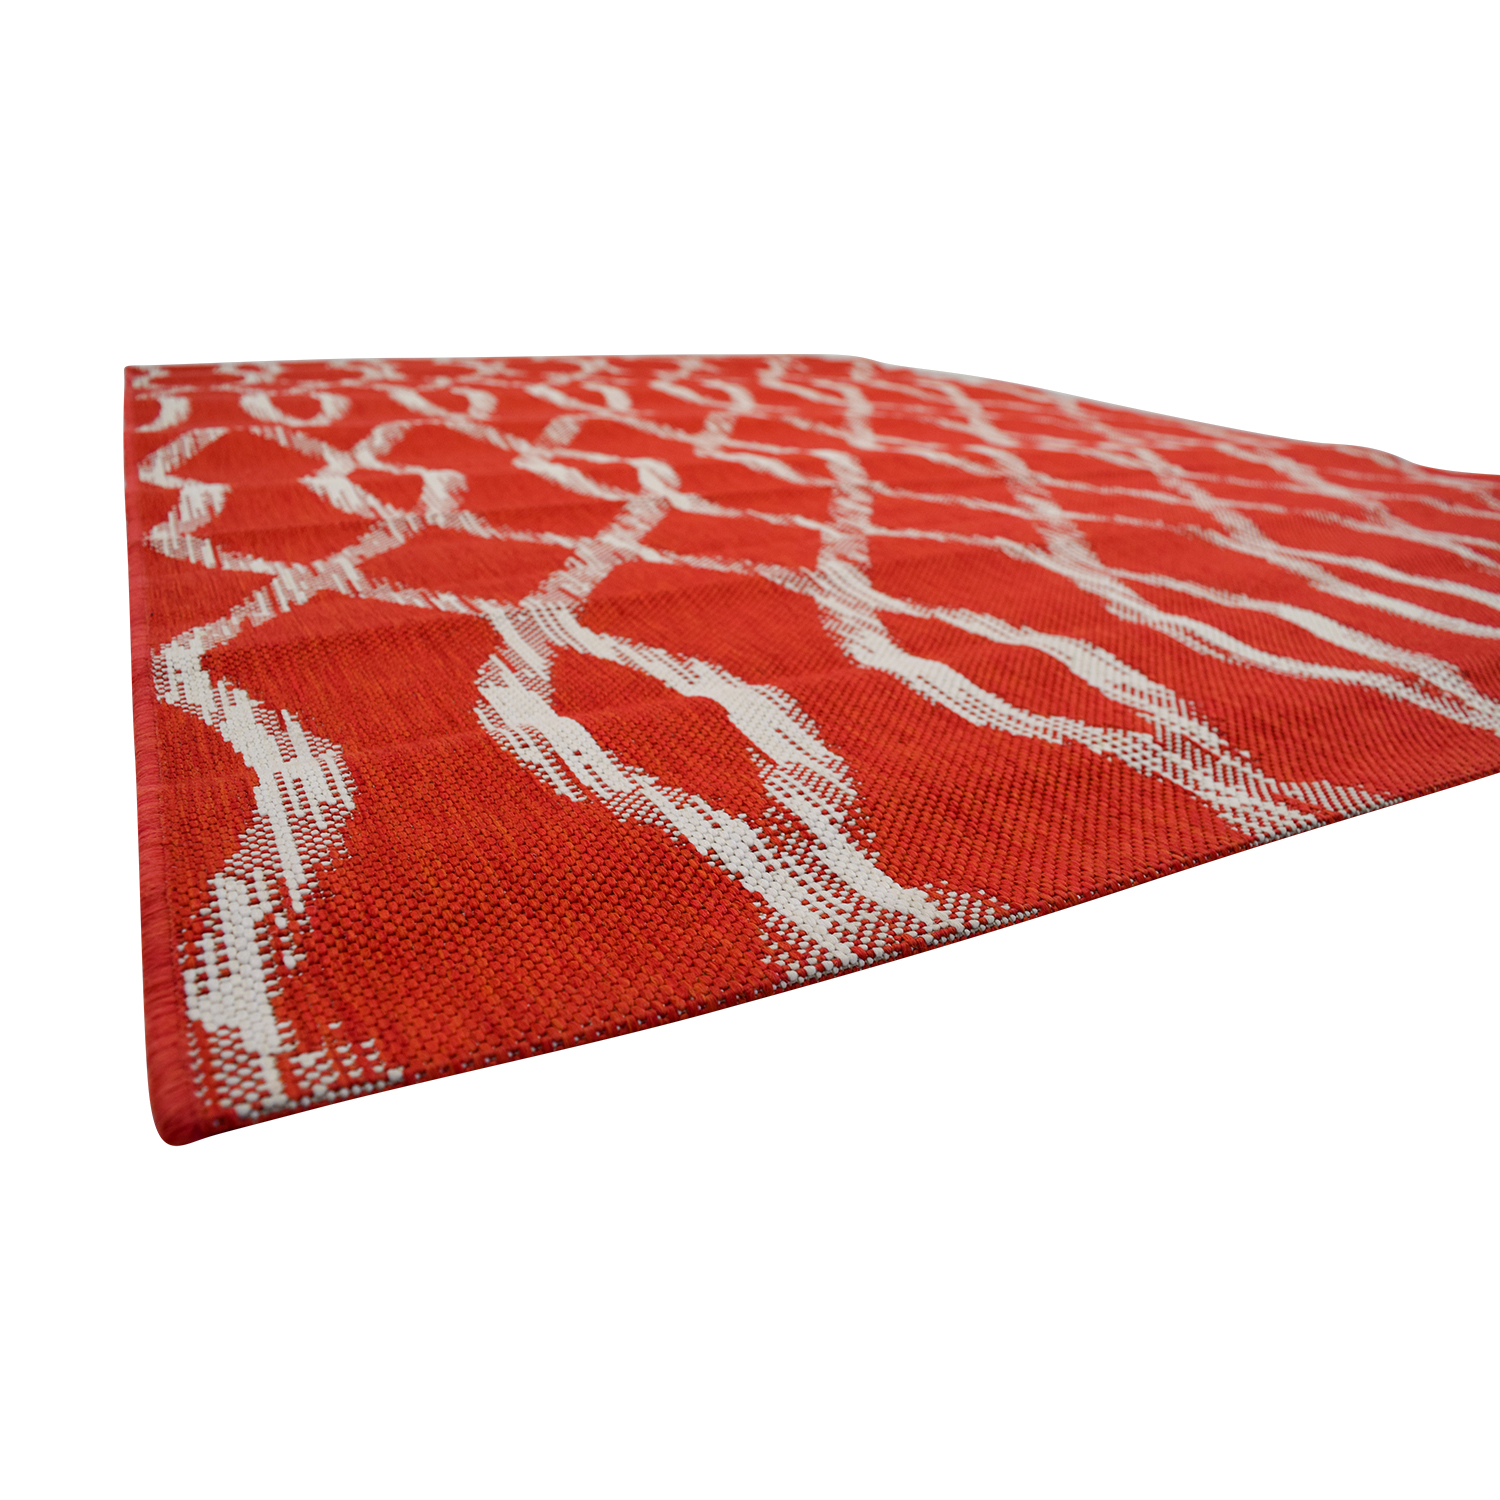 Crate & Barrel Crate & Barrel Indoor and Outdoor Red and White Rug coupon